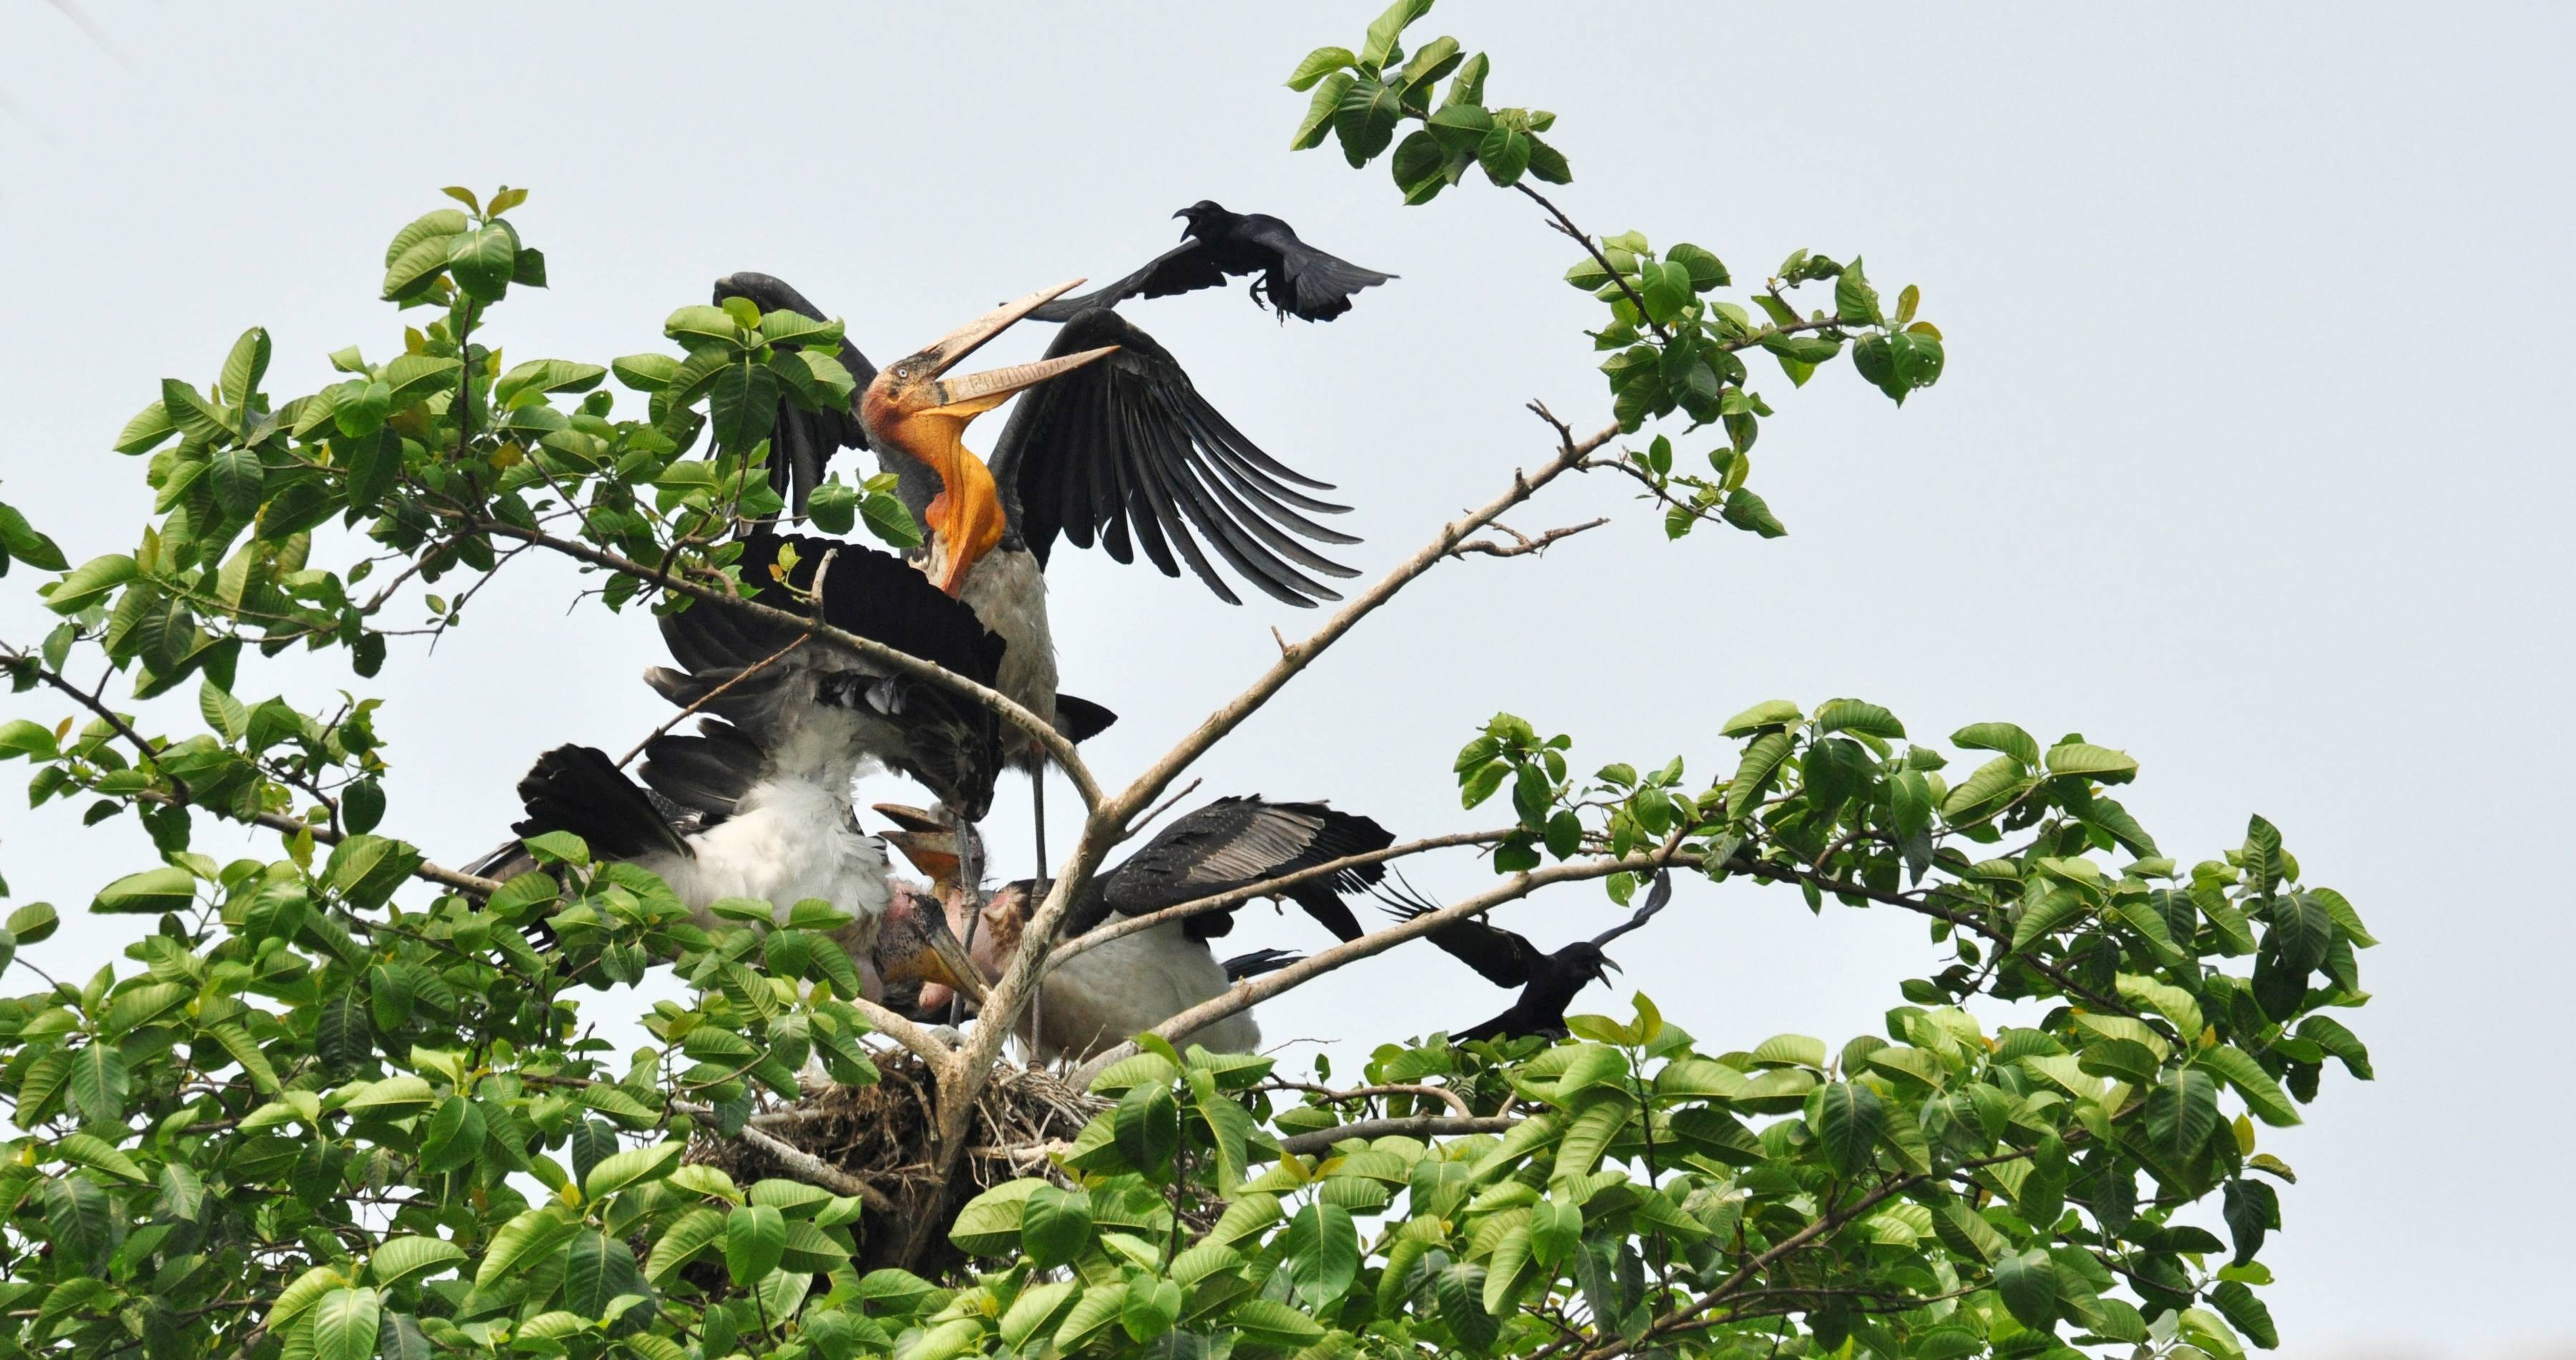 Grassroot community efforts in Bihar and Assam have brought the bird back from the brink. Though the bird remains endangered its future no longer seems as bleak as it did a decade ago. Photo courtesy: Arvind Mishra